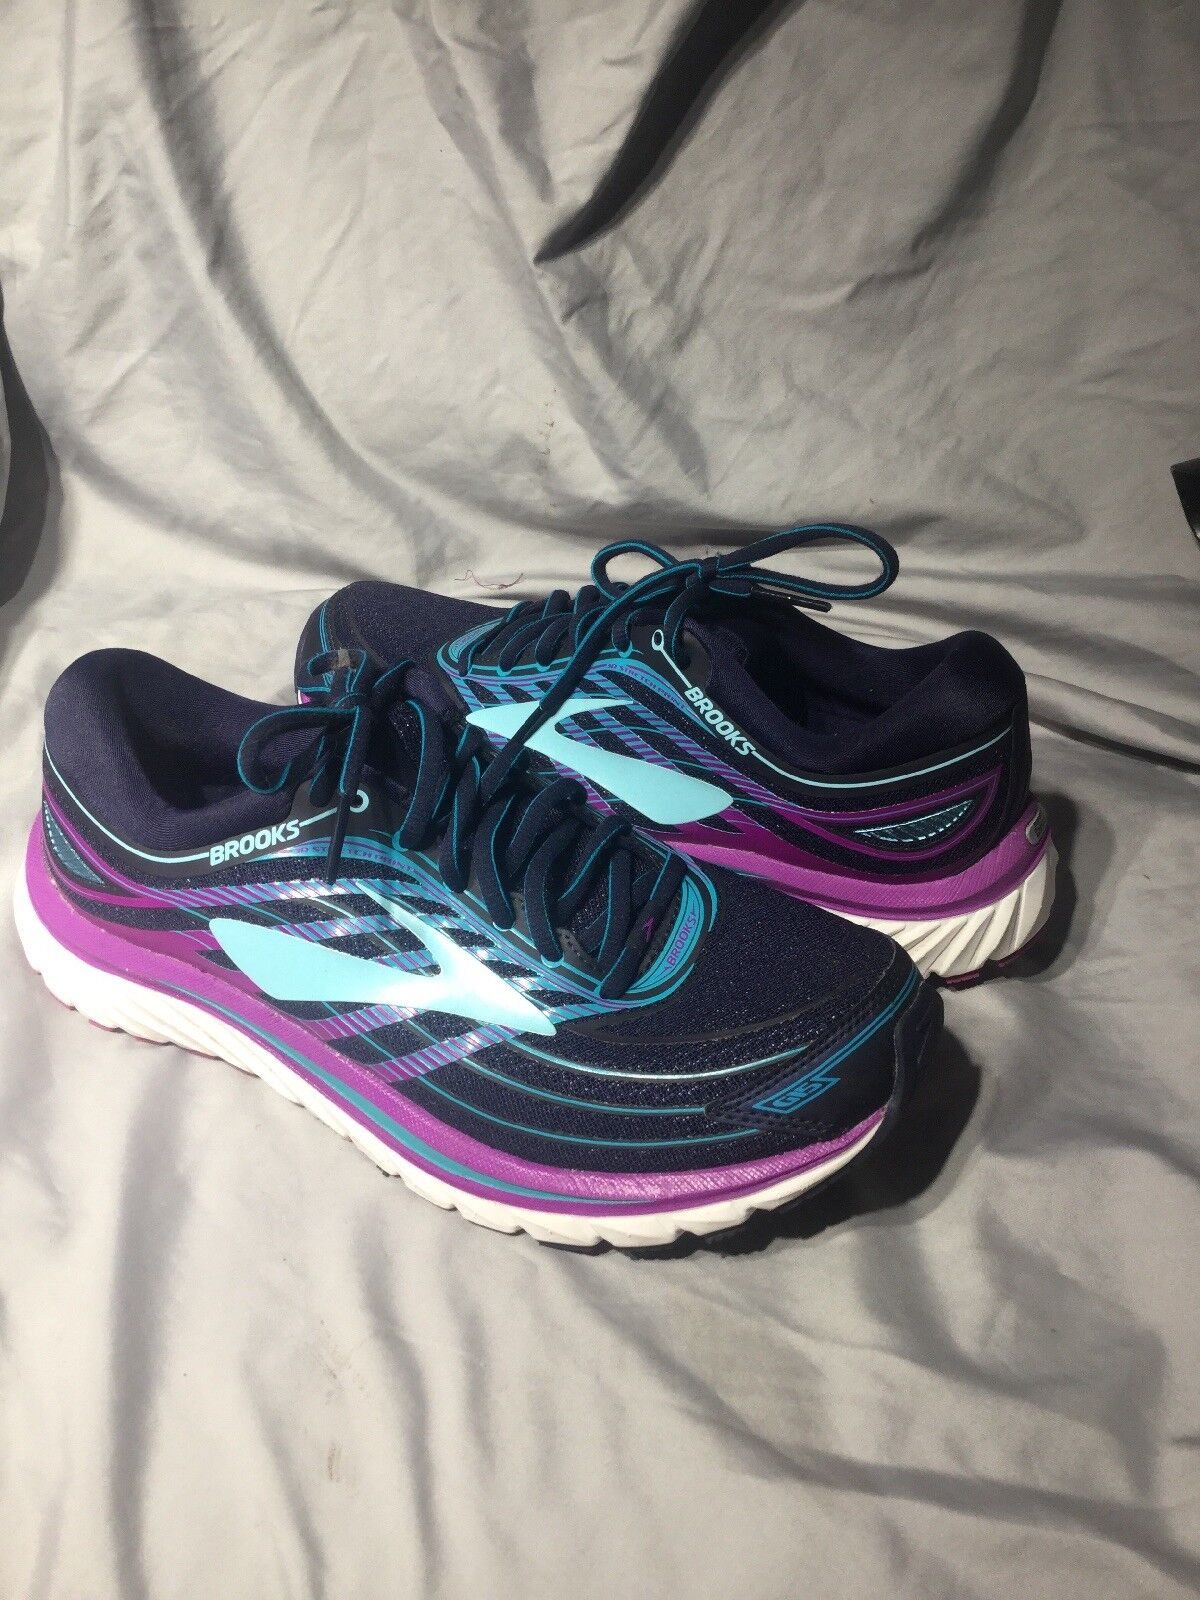 Brooks Glycerin 15 Women's 10.5 B Medium Evening bluee Purple Cactus 120247 465